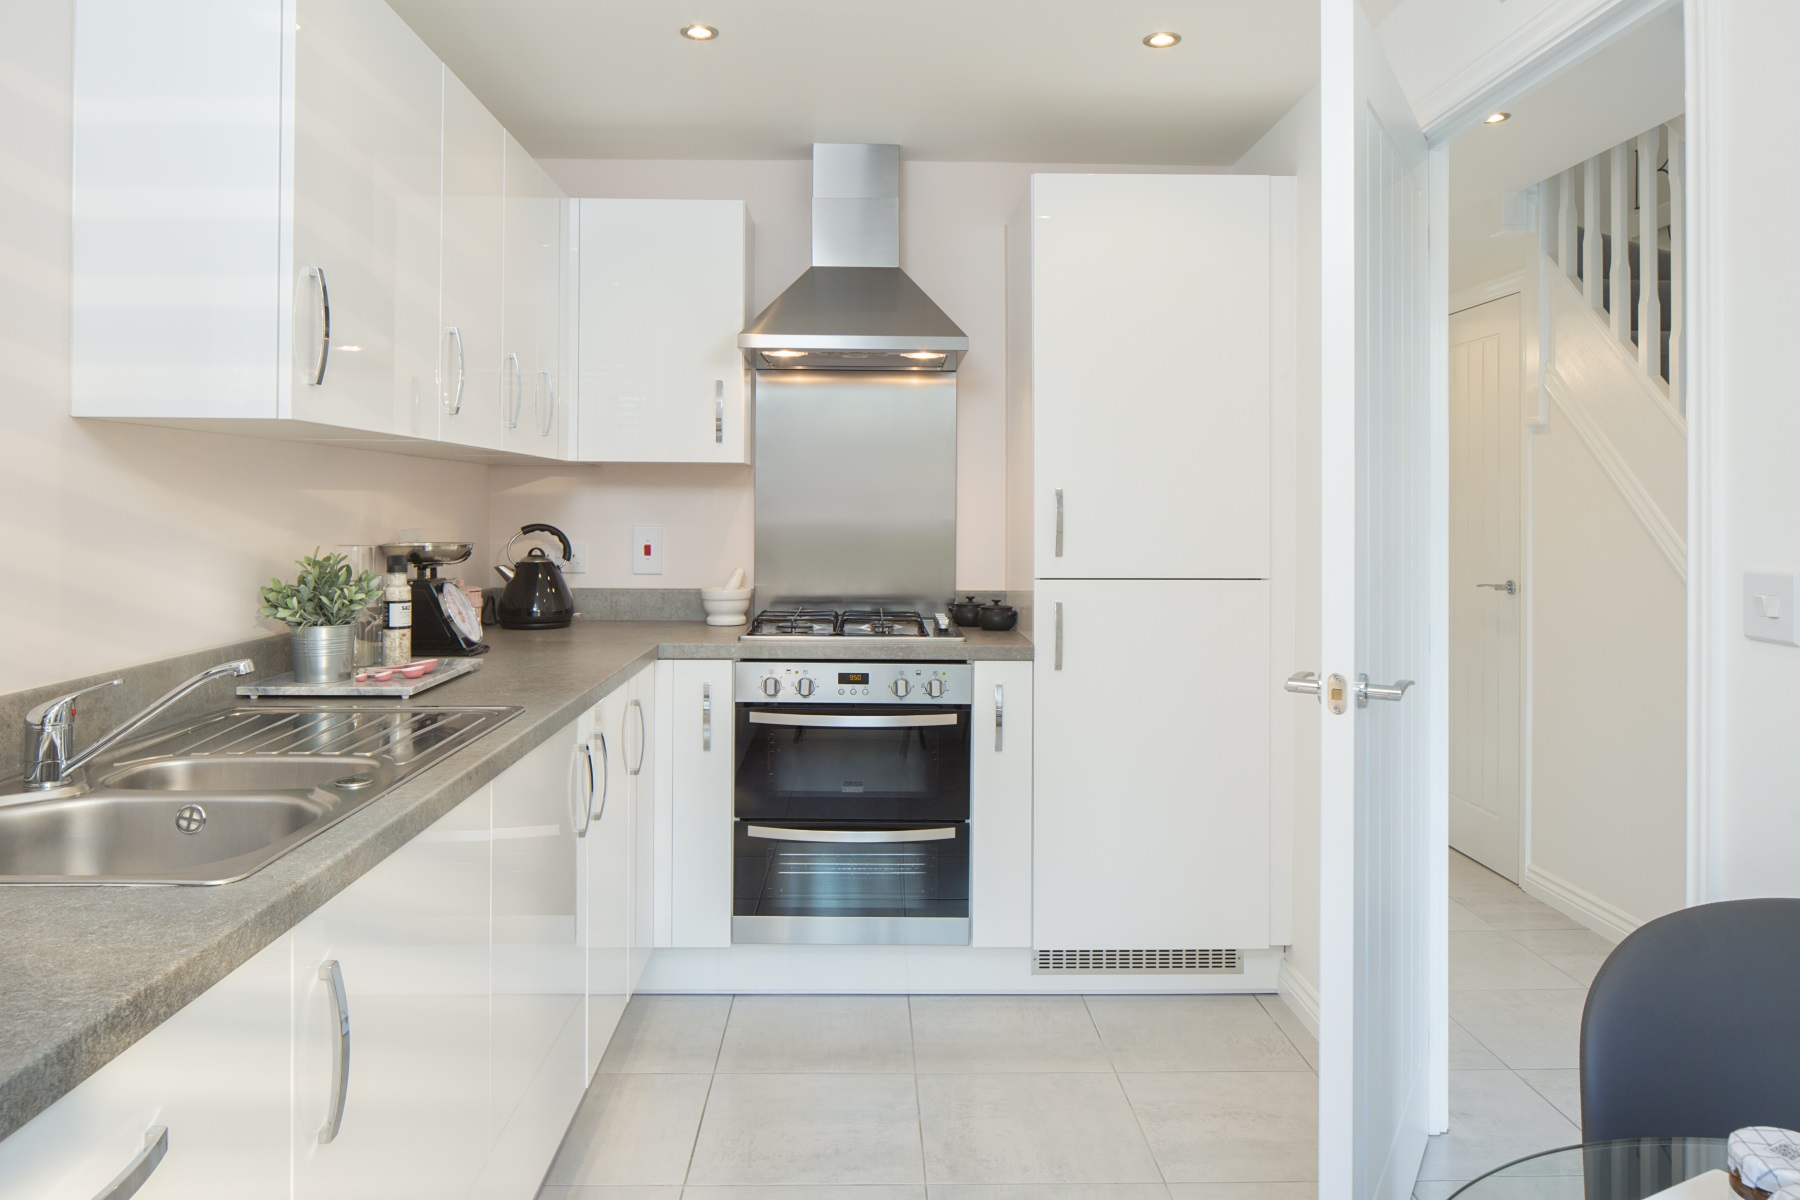 TW Exeter - Cranbrook - Flatford example kitchen 2